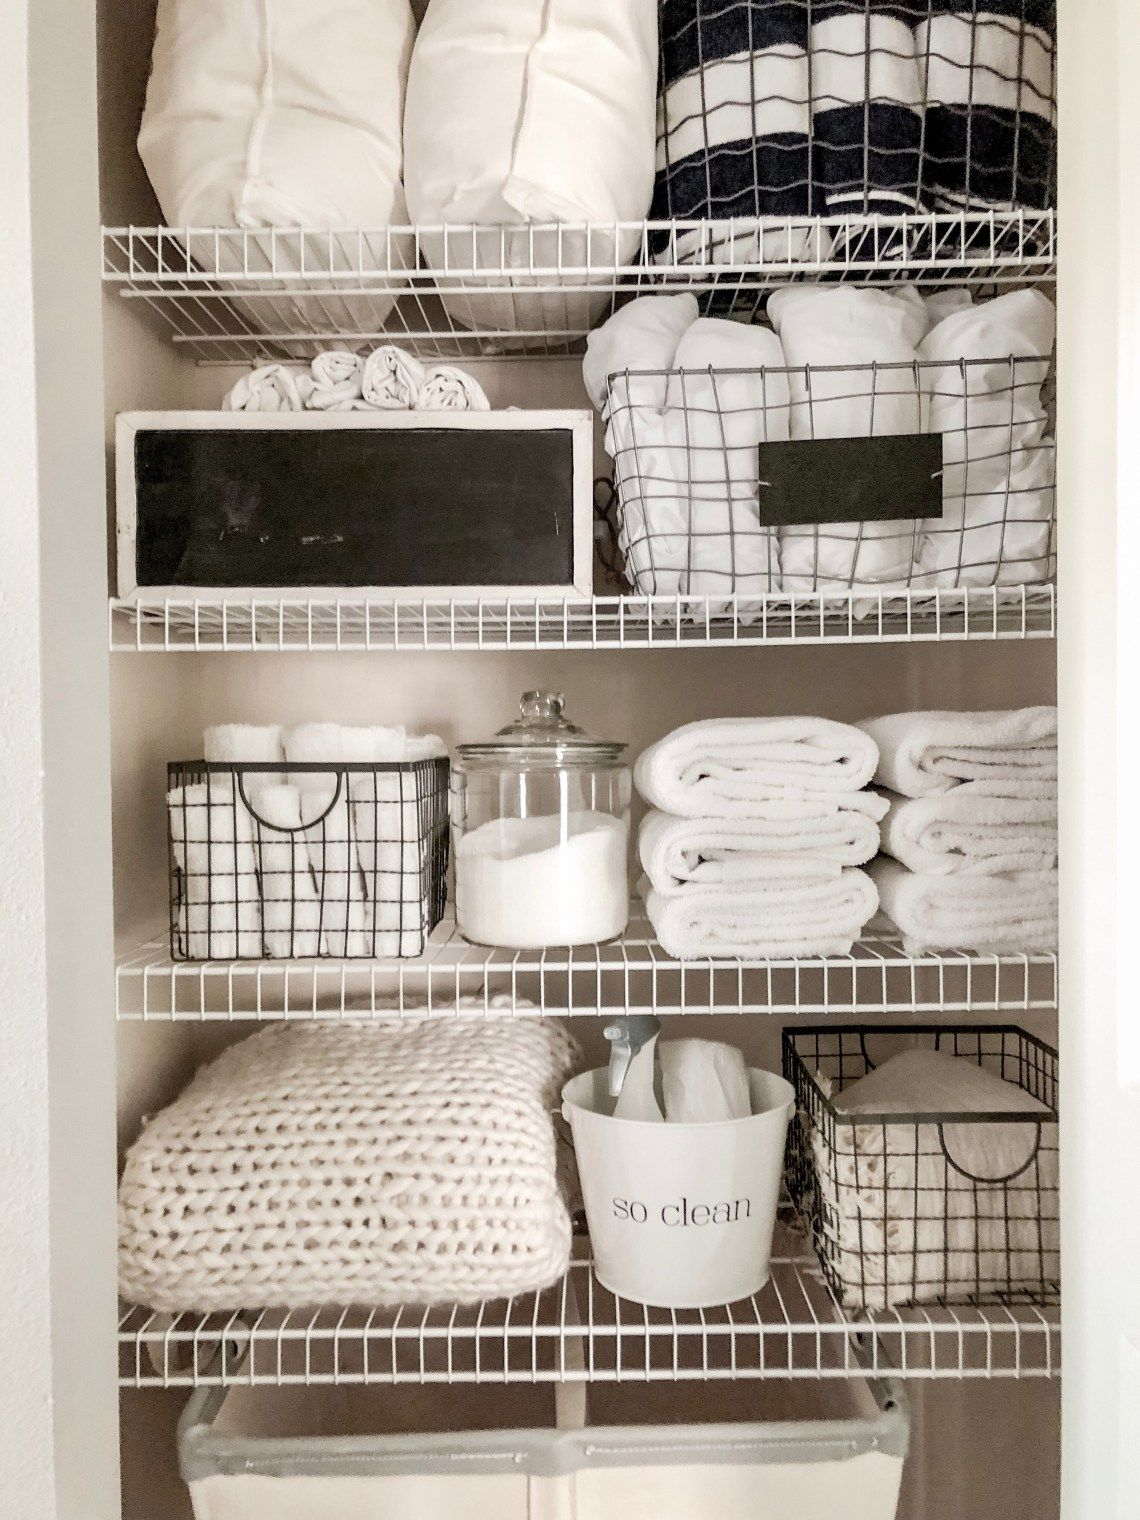 Simple Easy Small Linen Closet Organization Organizing A Tiny Hall Closet With Towels An Linen Closet Storage Linen Closet Organization Small Linen Closets